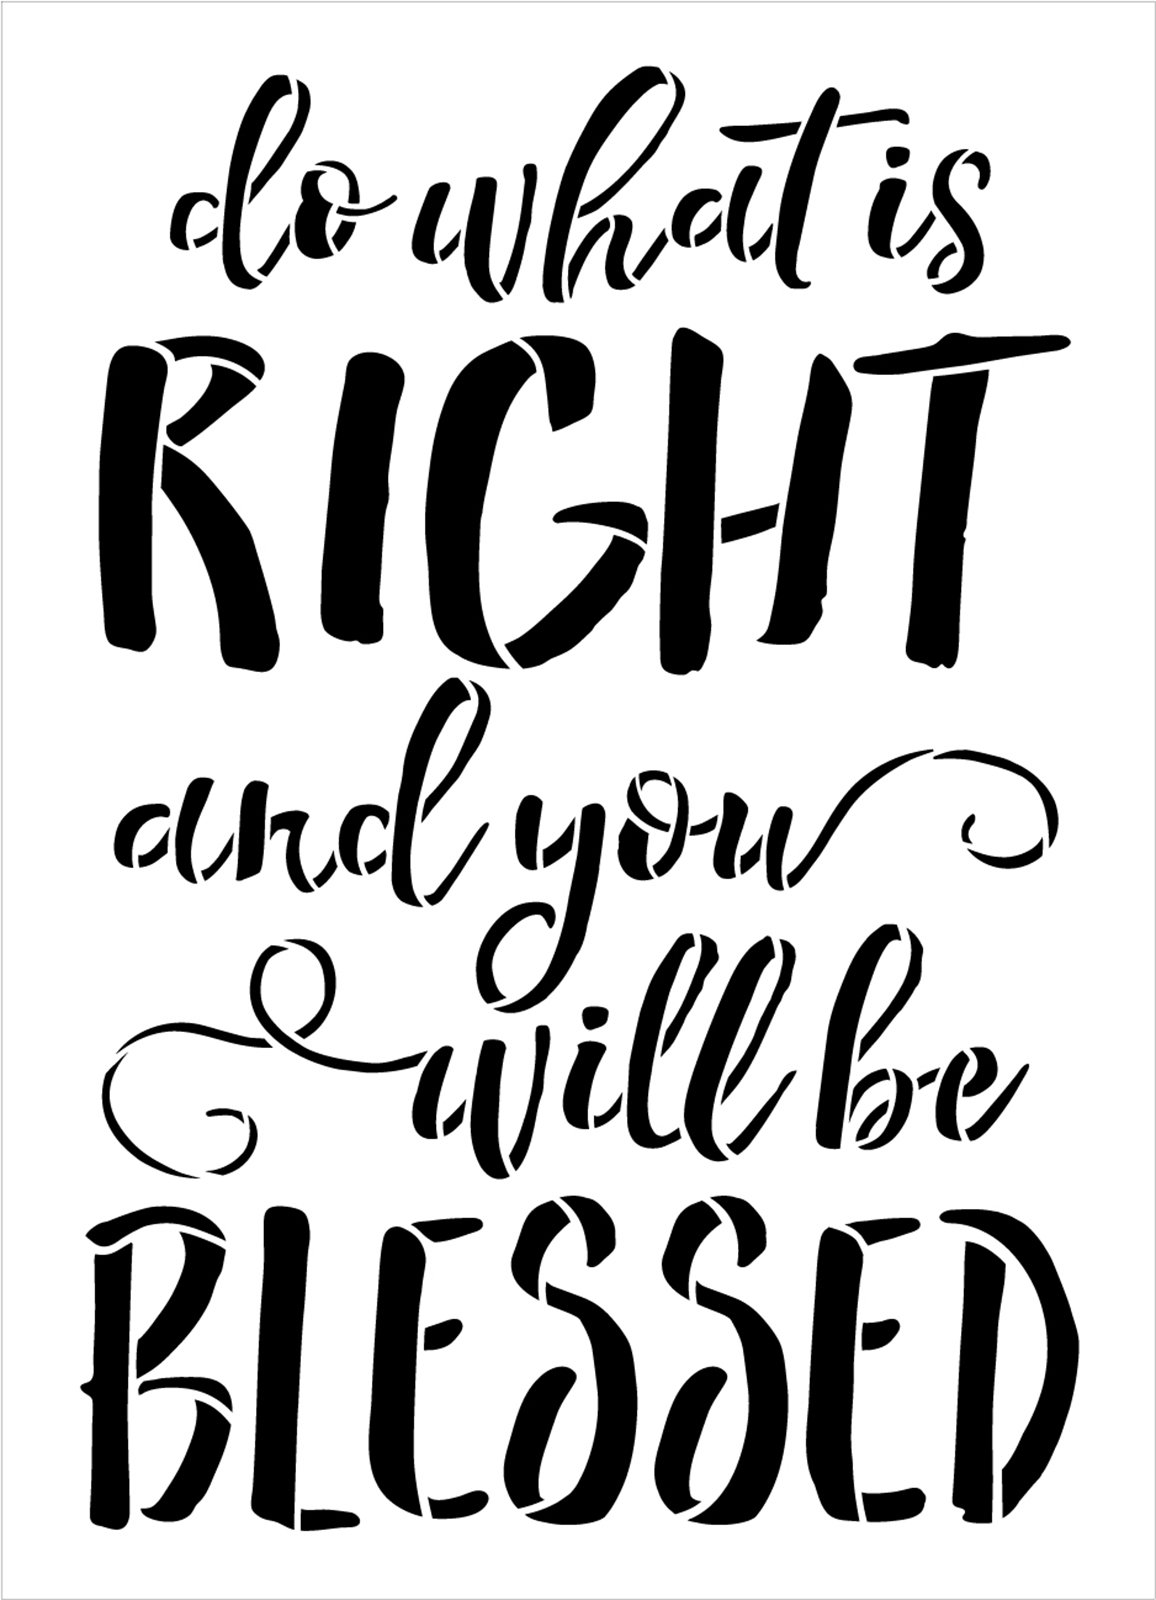 Do What is Right You Will Be Blessed Stencil by StudioR12 | Craft DIY Home Decor | Paint Faith & Inspiration Wood Sign | Reusable Mylar Template | Select Size